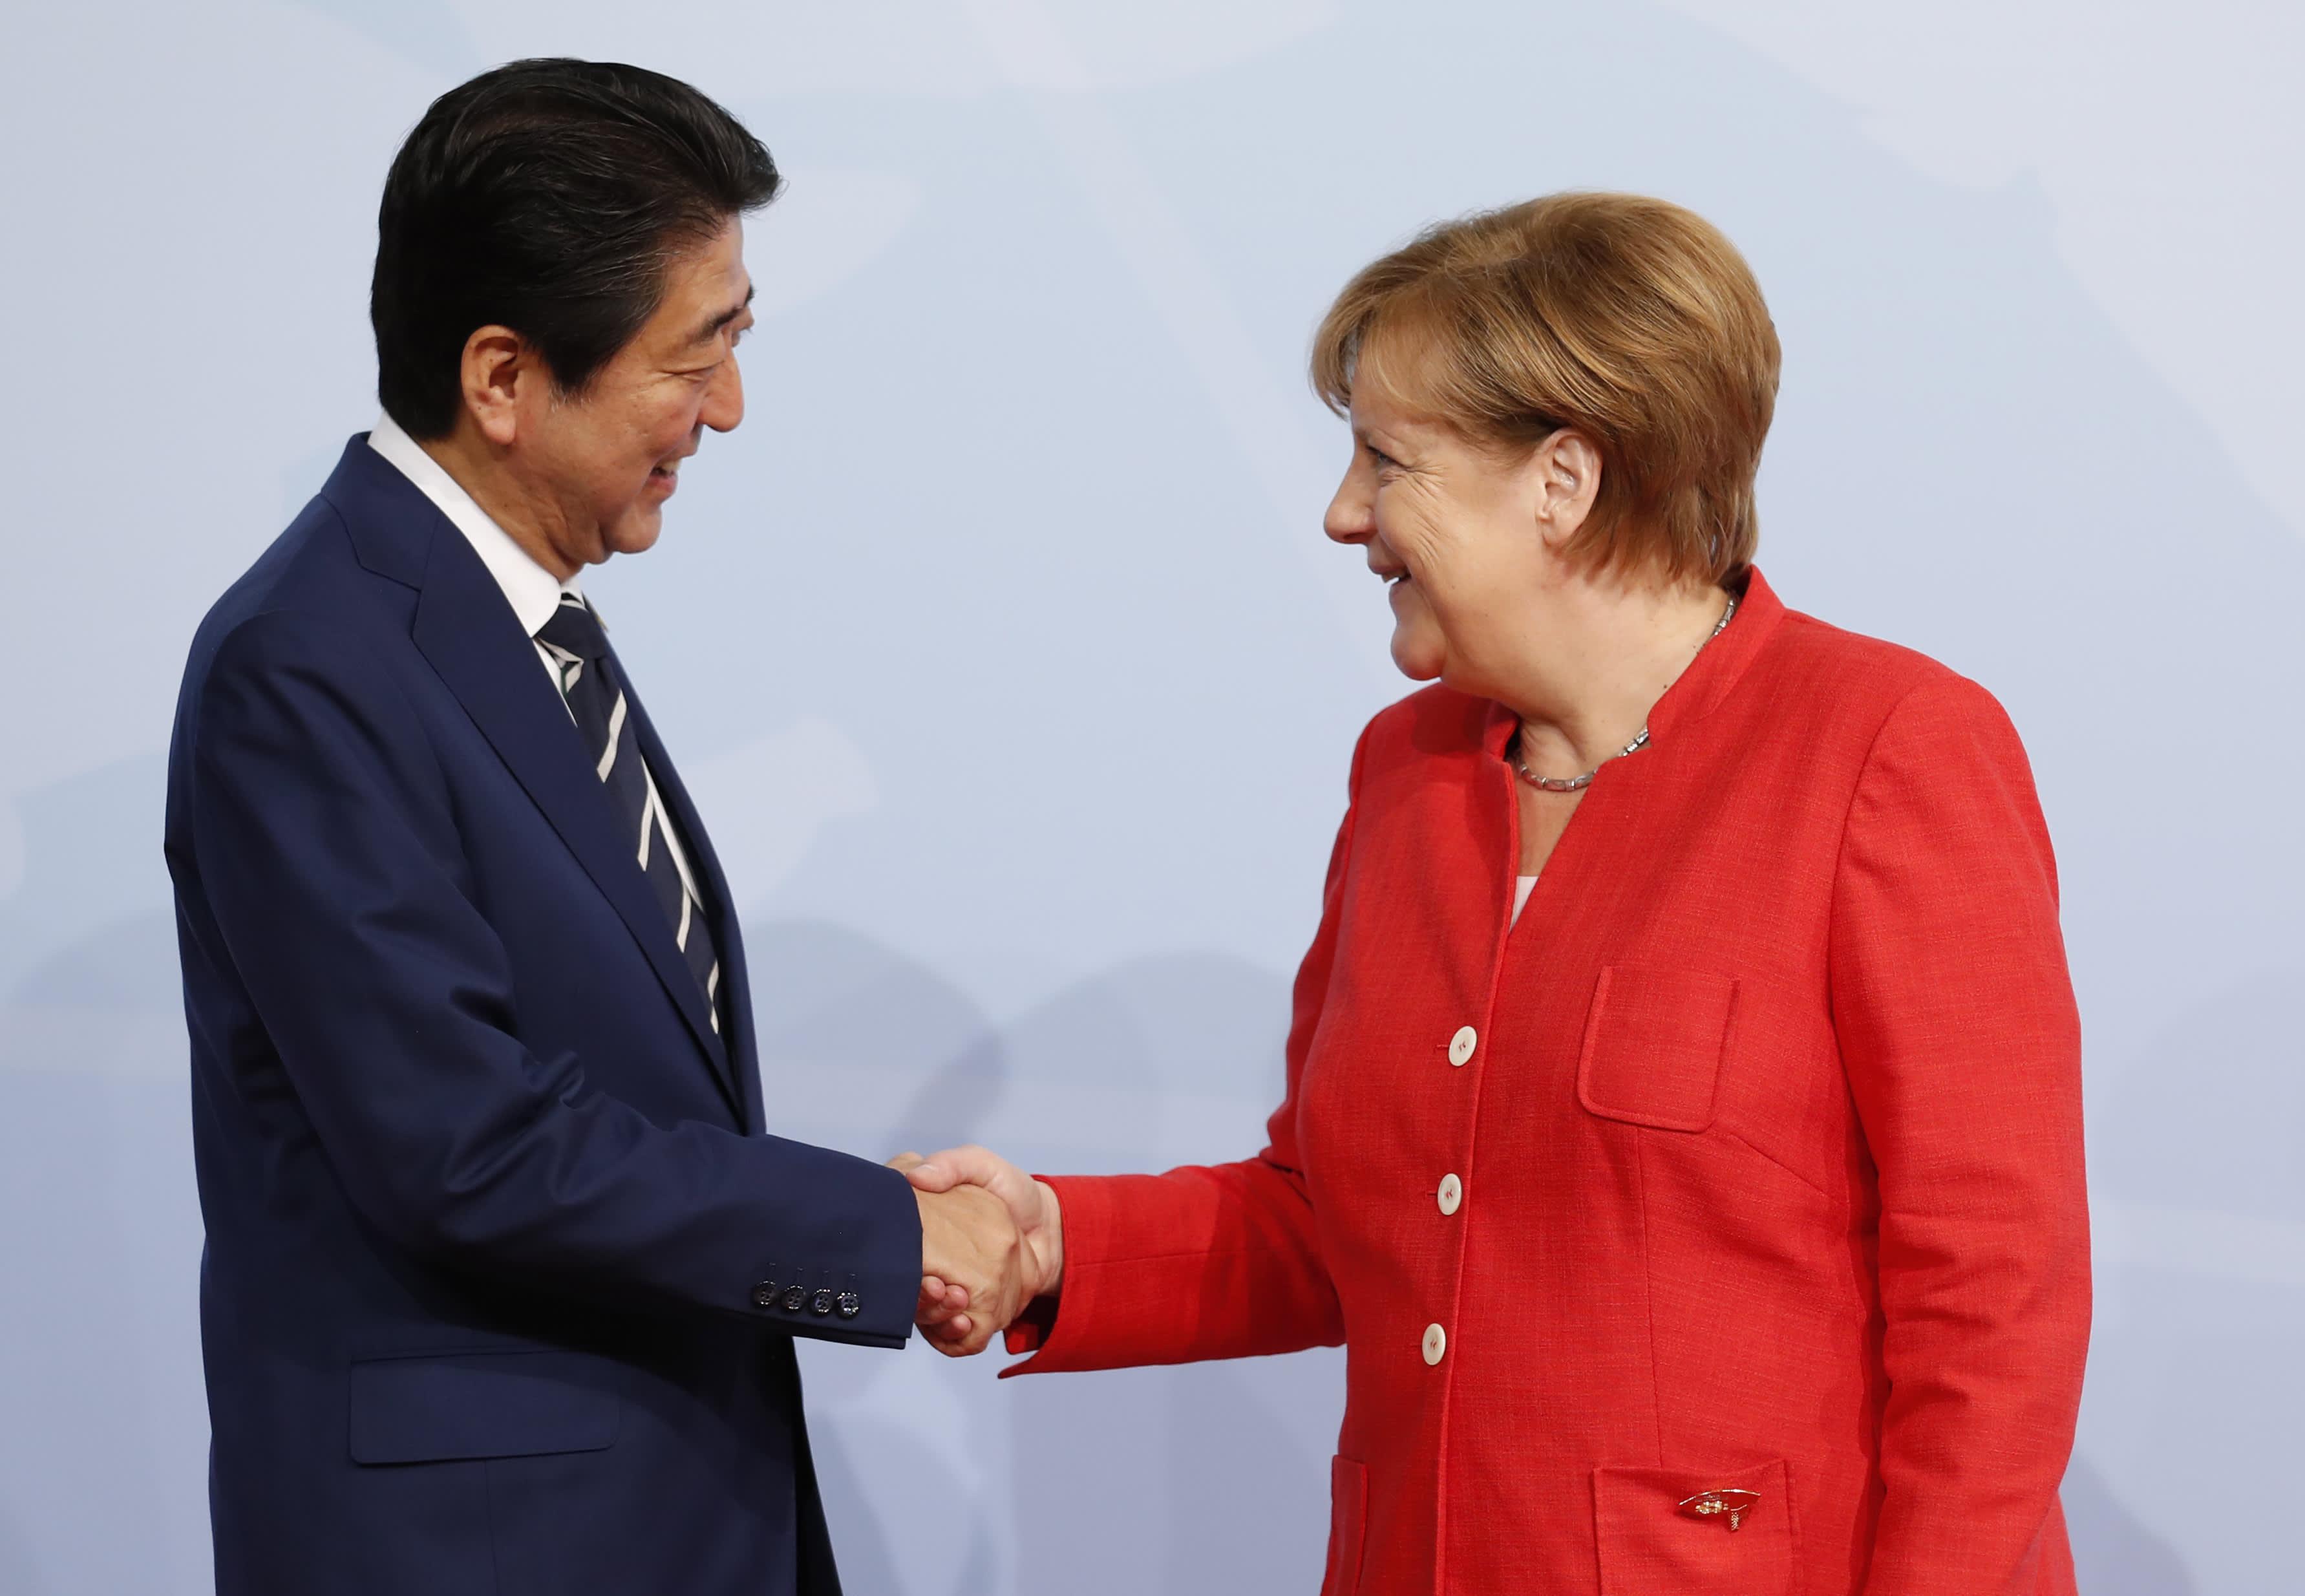 Only Germany and Japan have room for economic stimulus